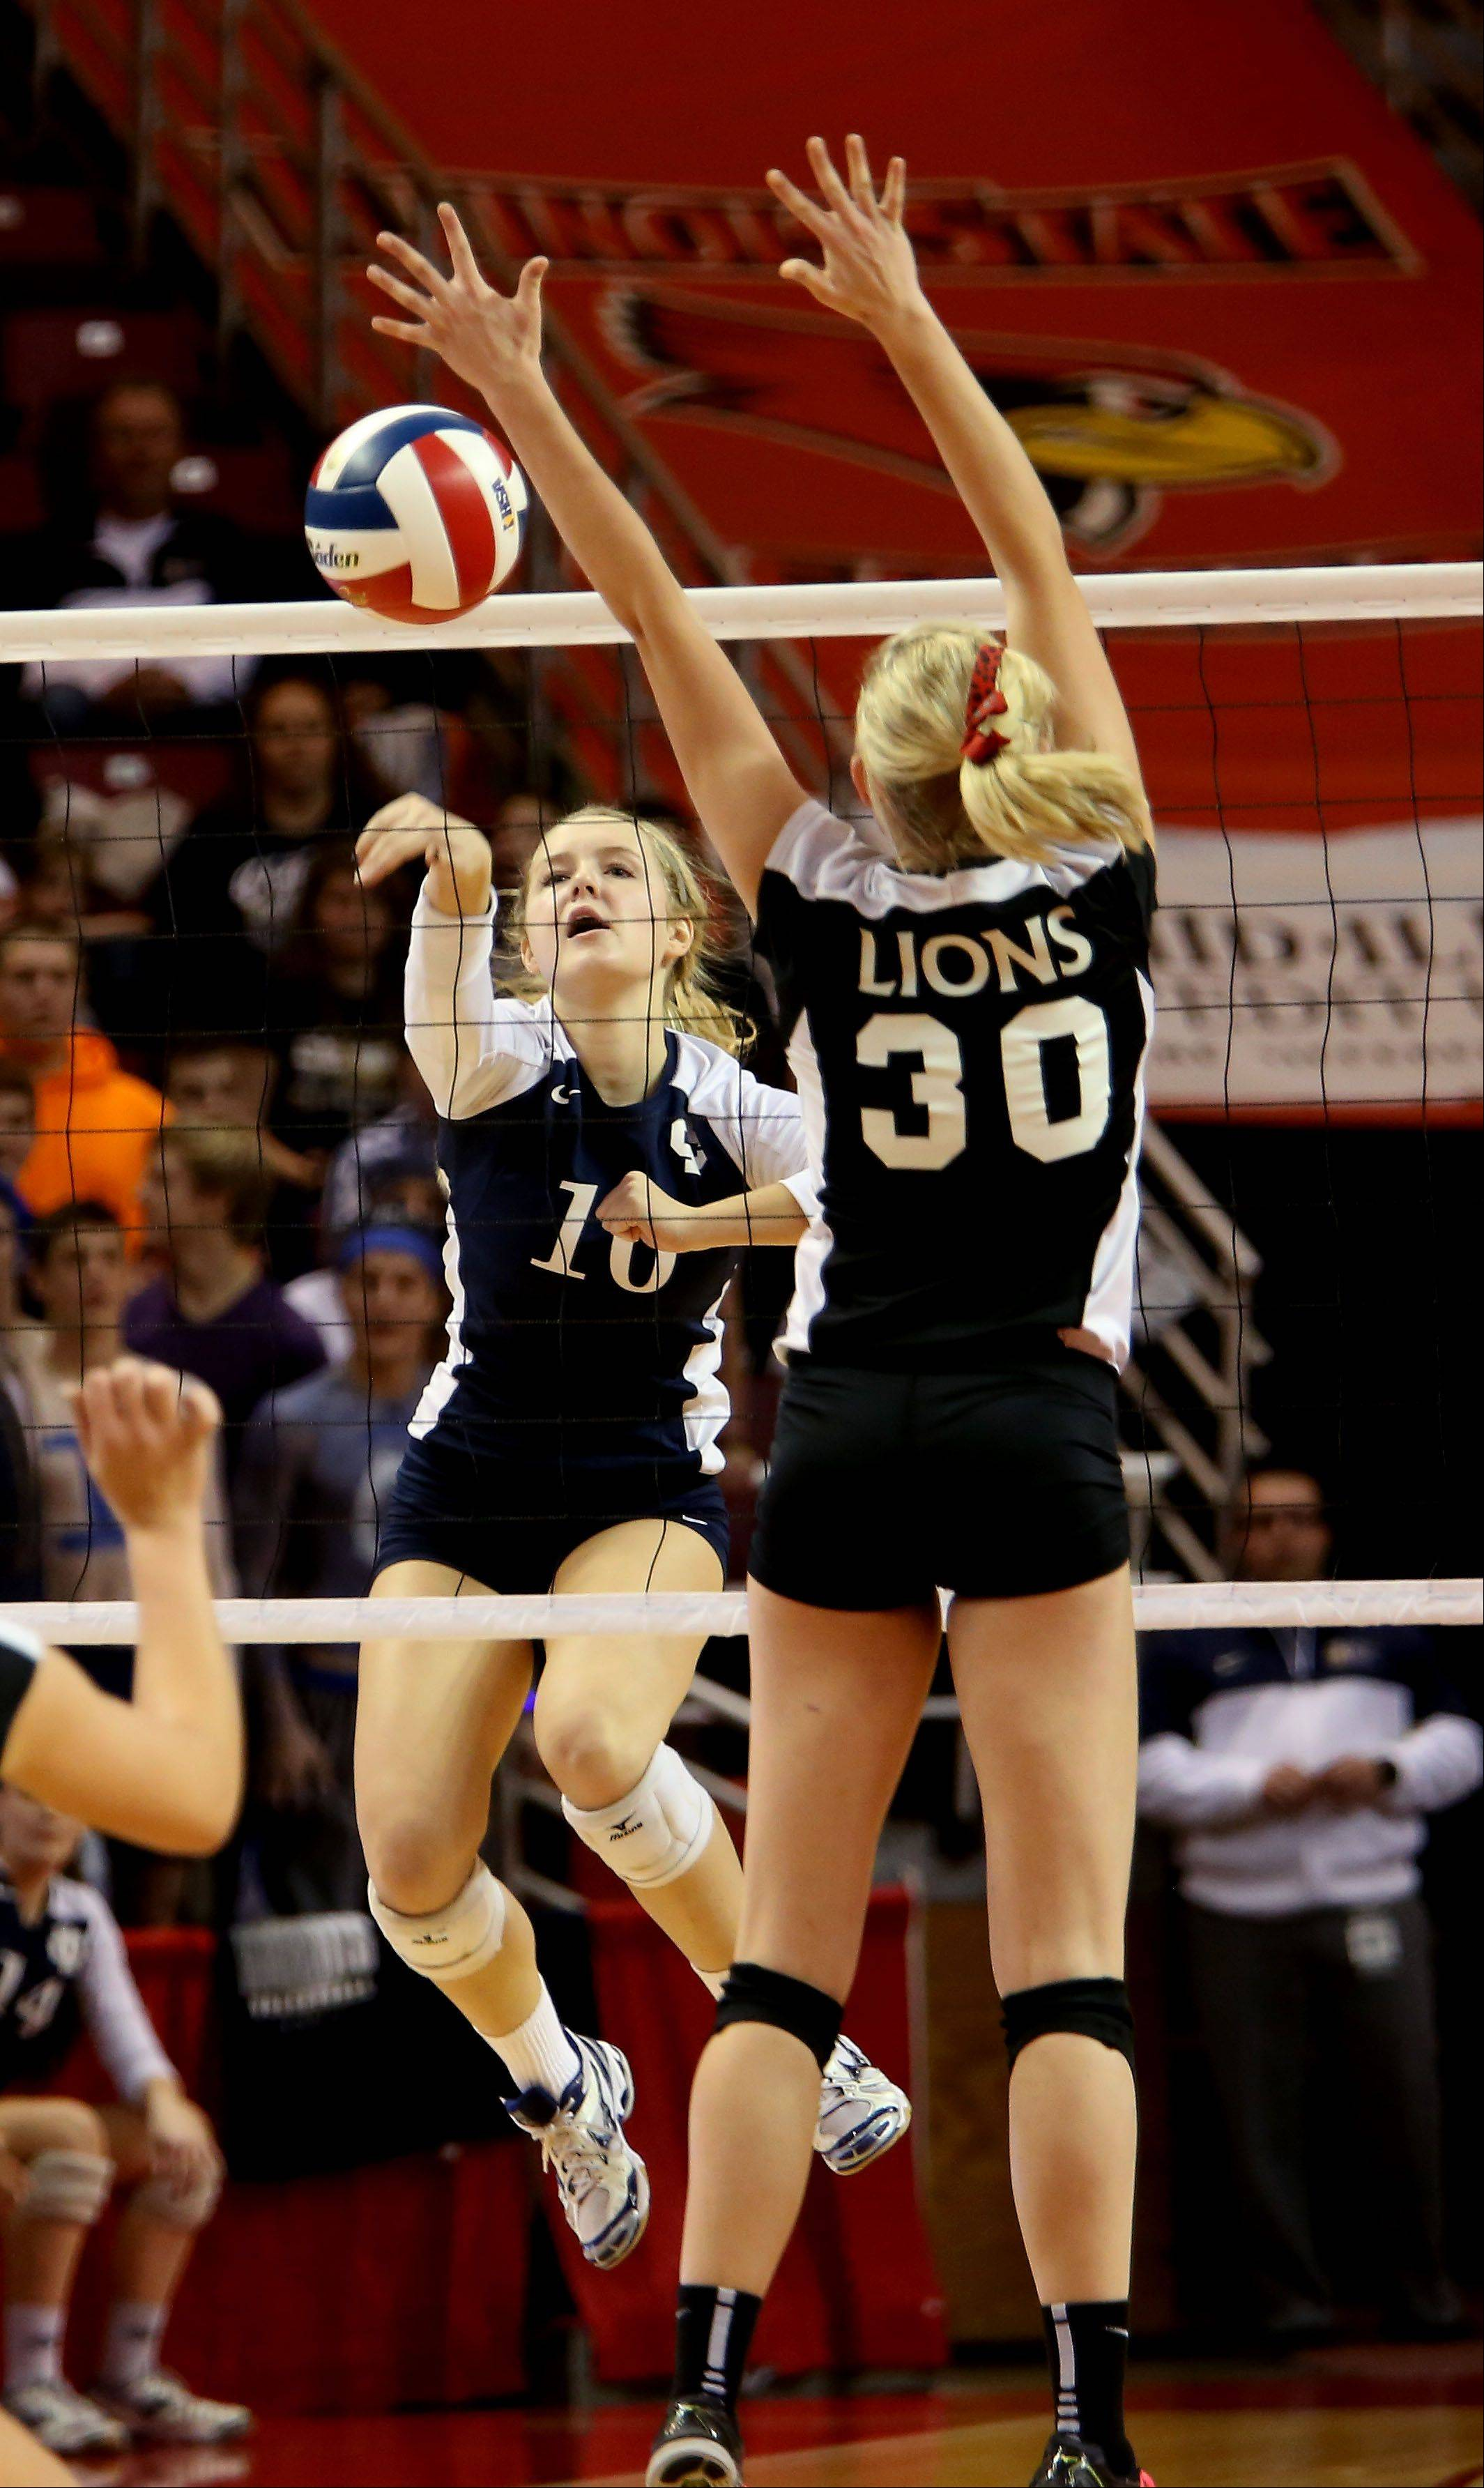 Hannah Hartnett of IC Catholic spikes the ball past kaeli James of Edwards County in the Class 2A championship girls volleyball match on Saturday in Normal.